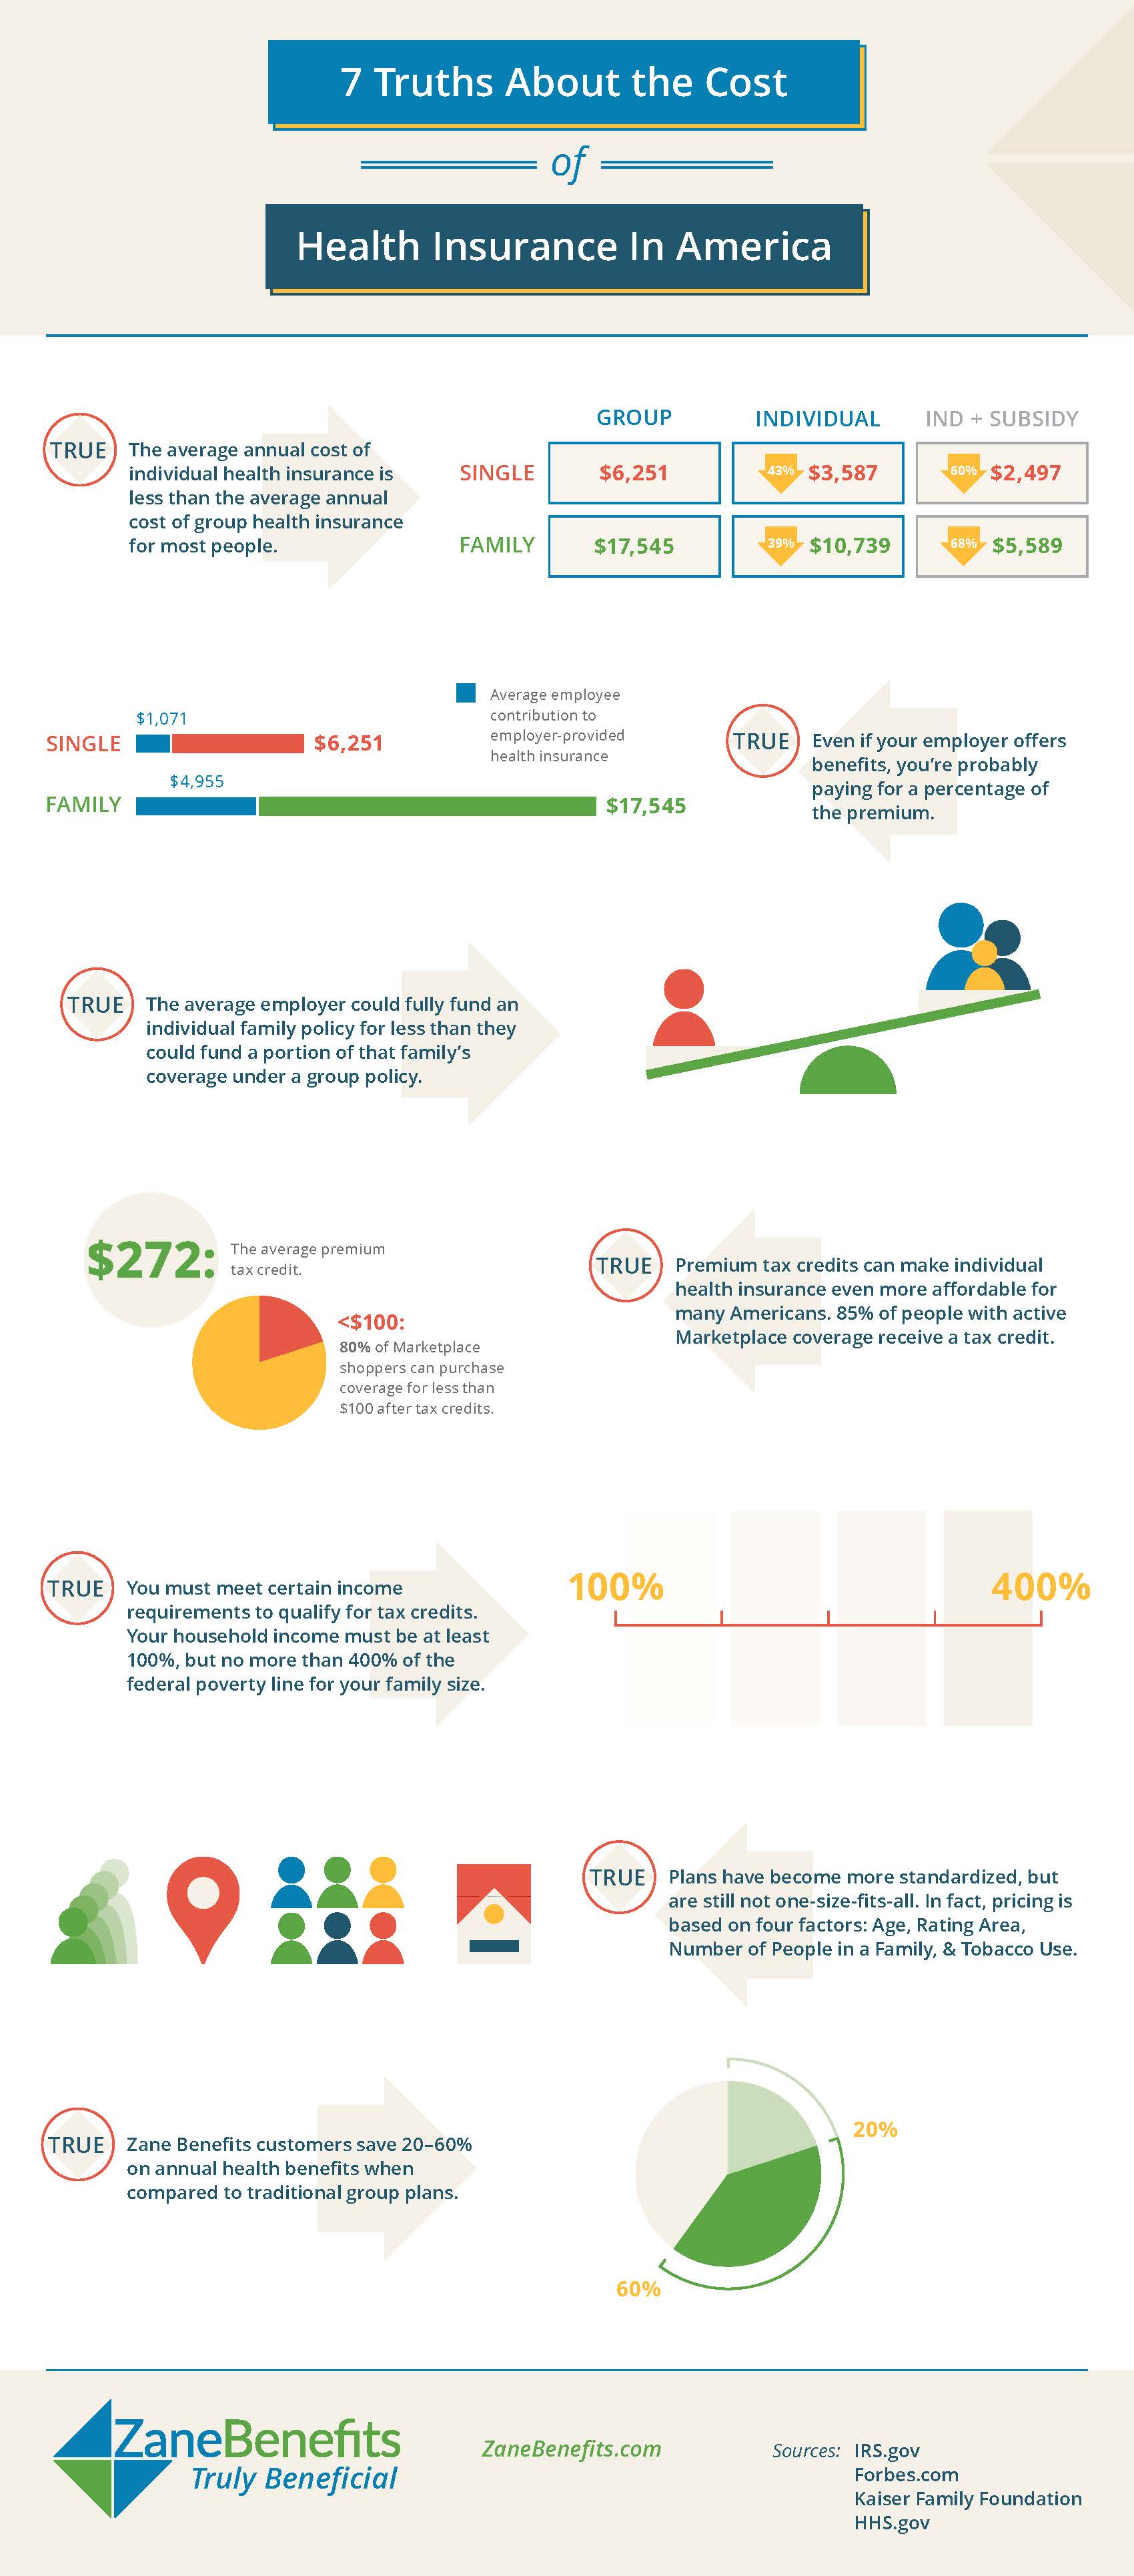 7 Truths About The Cost of Health Insurance in America Infographic